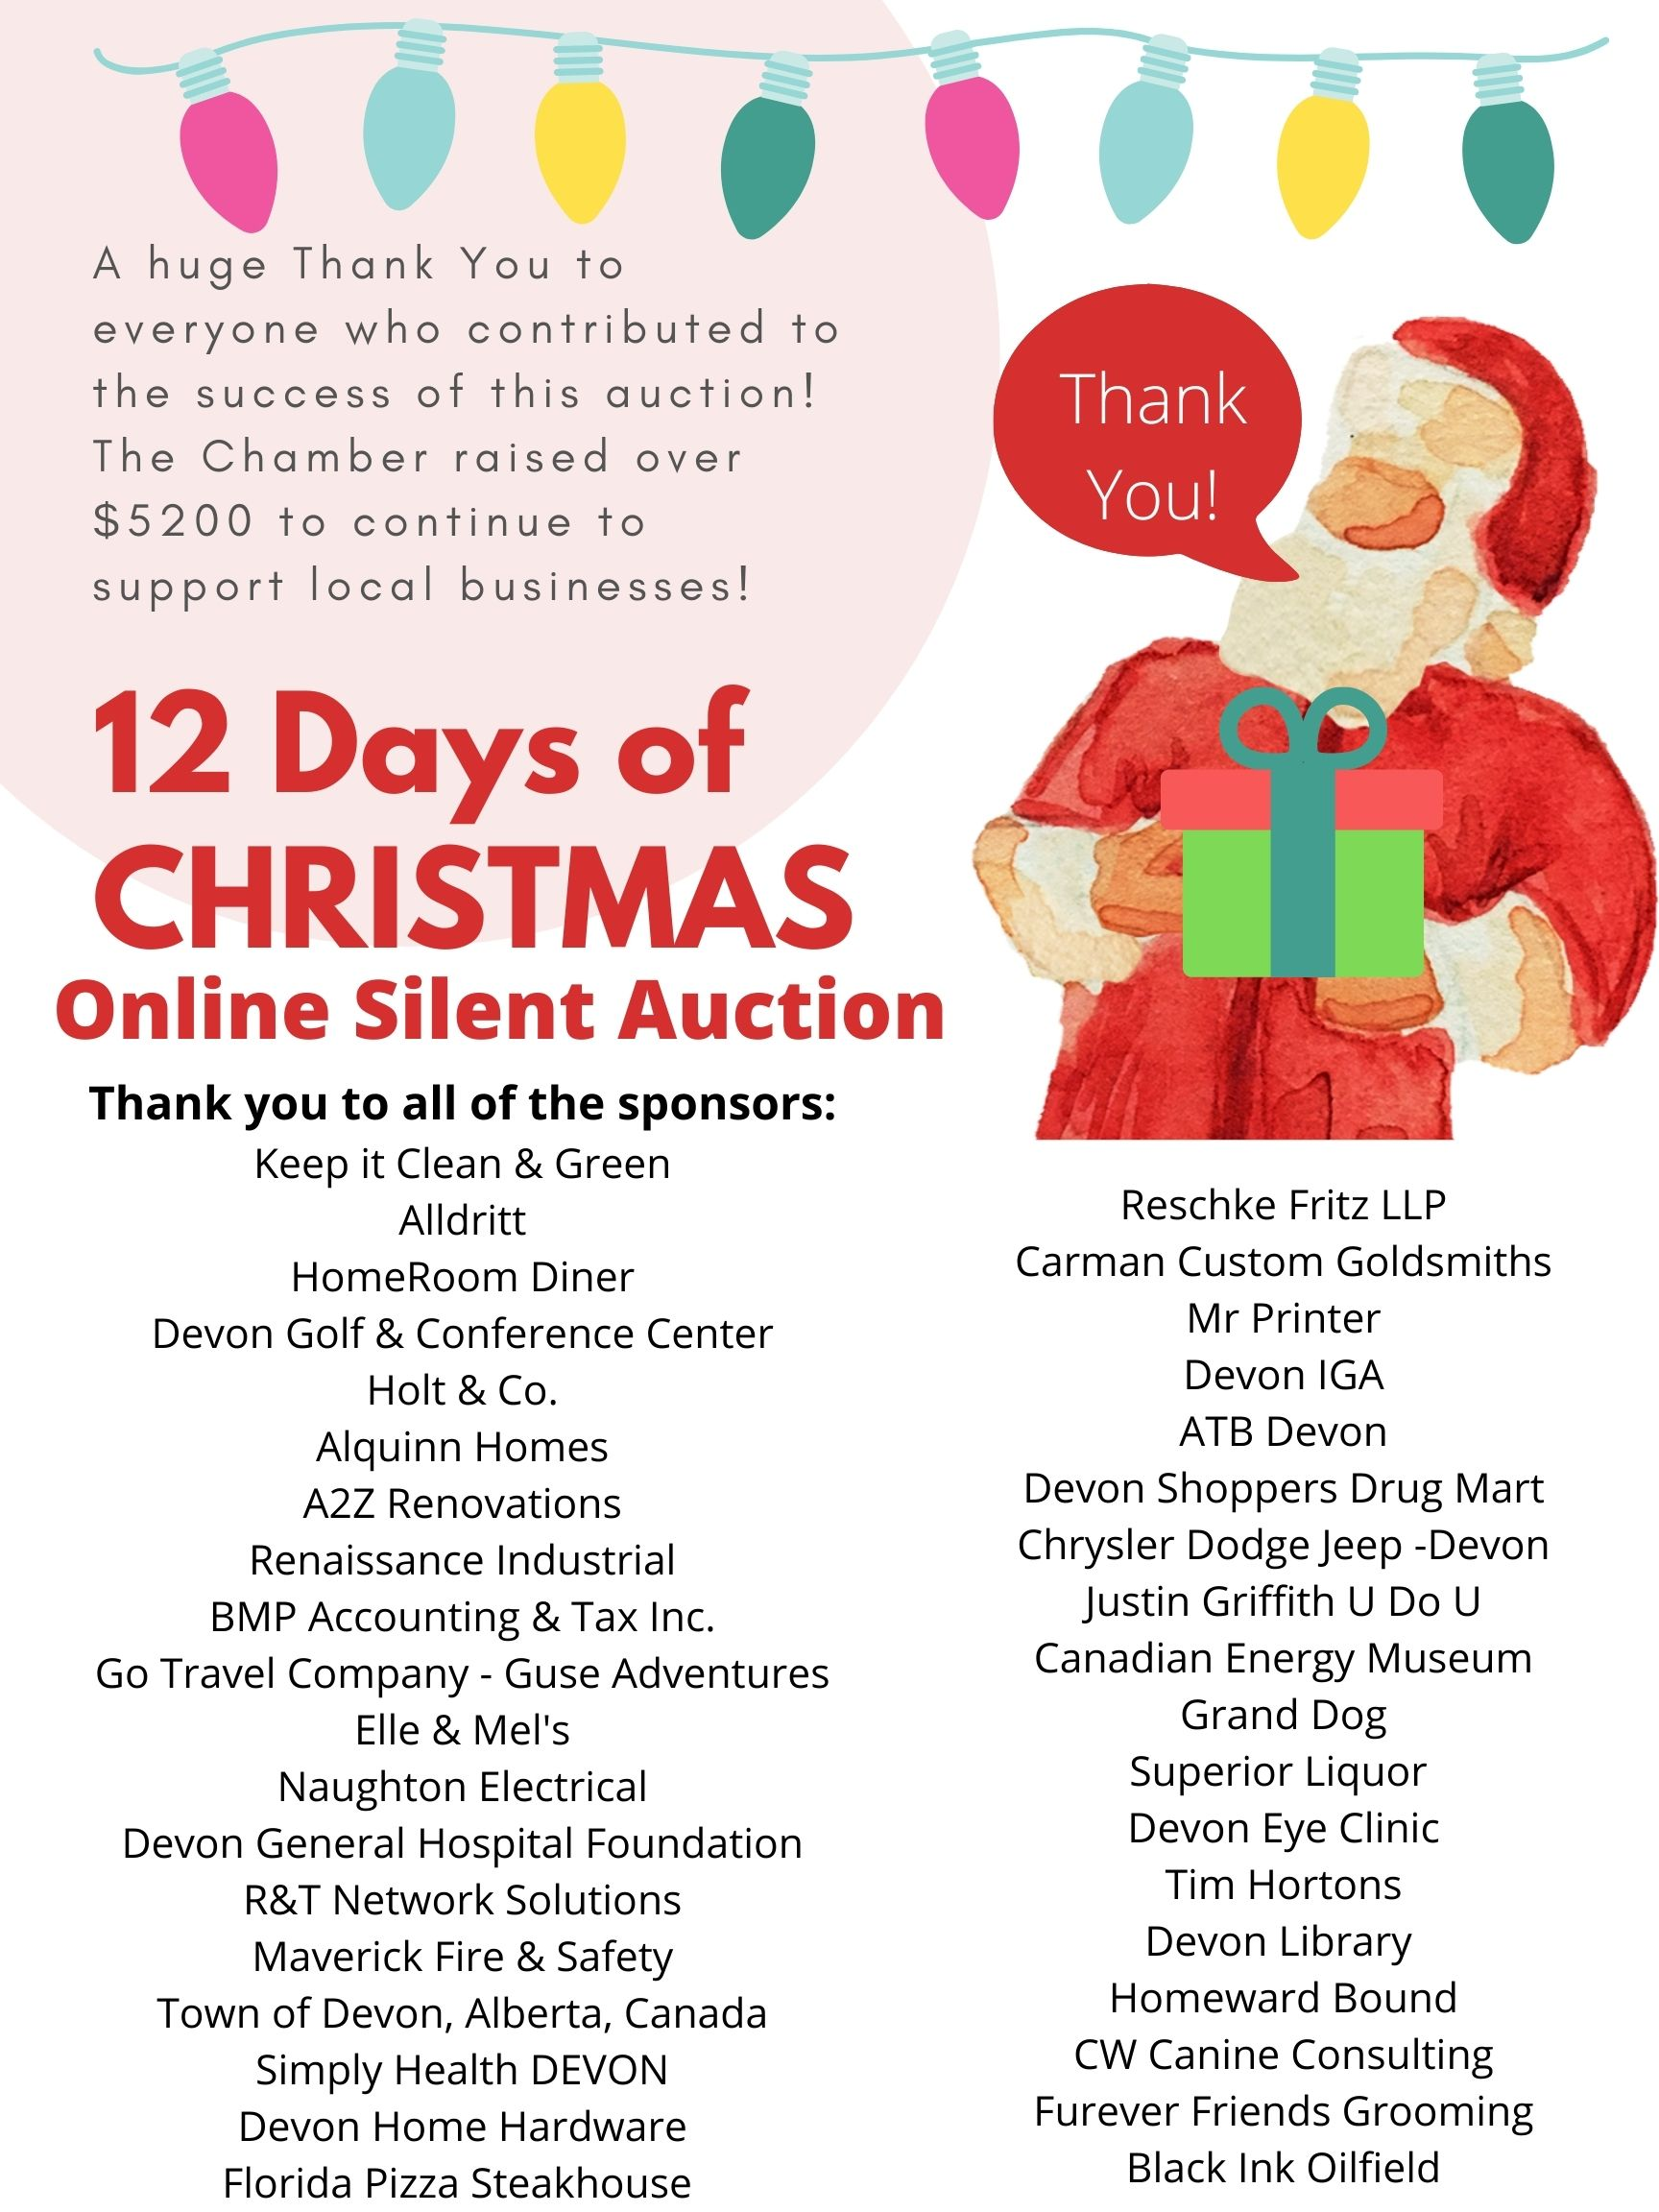 12 Days of Christmas Auction!